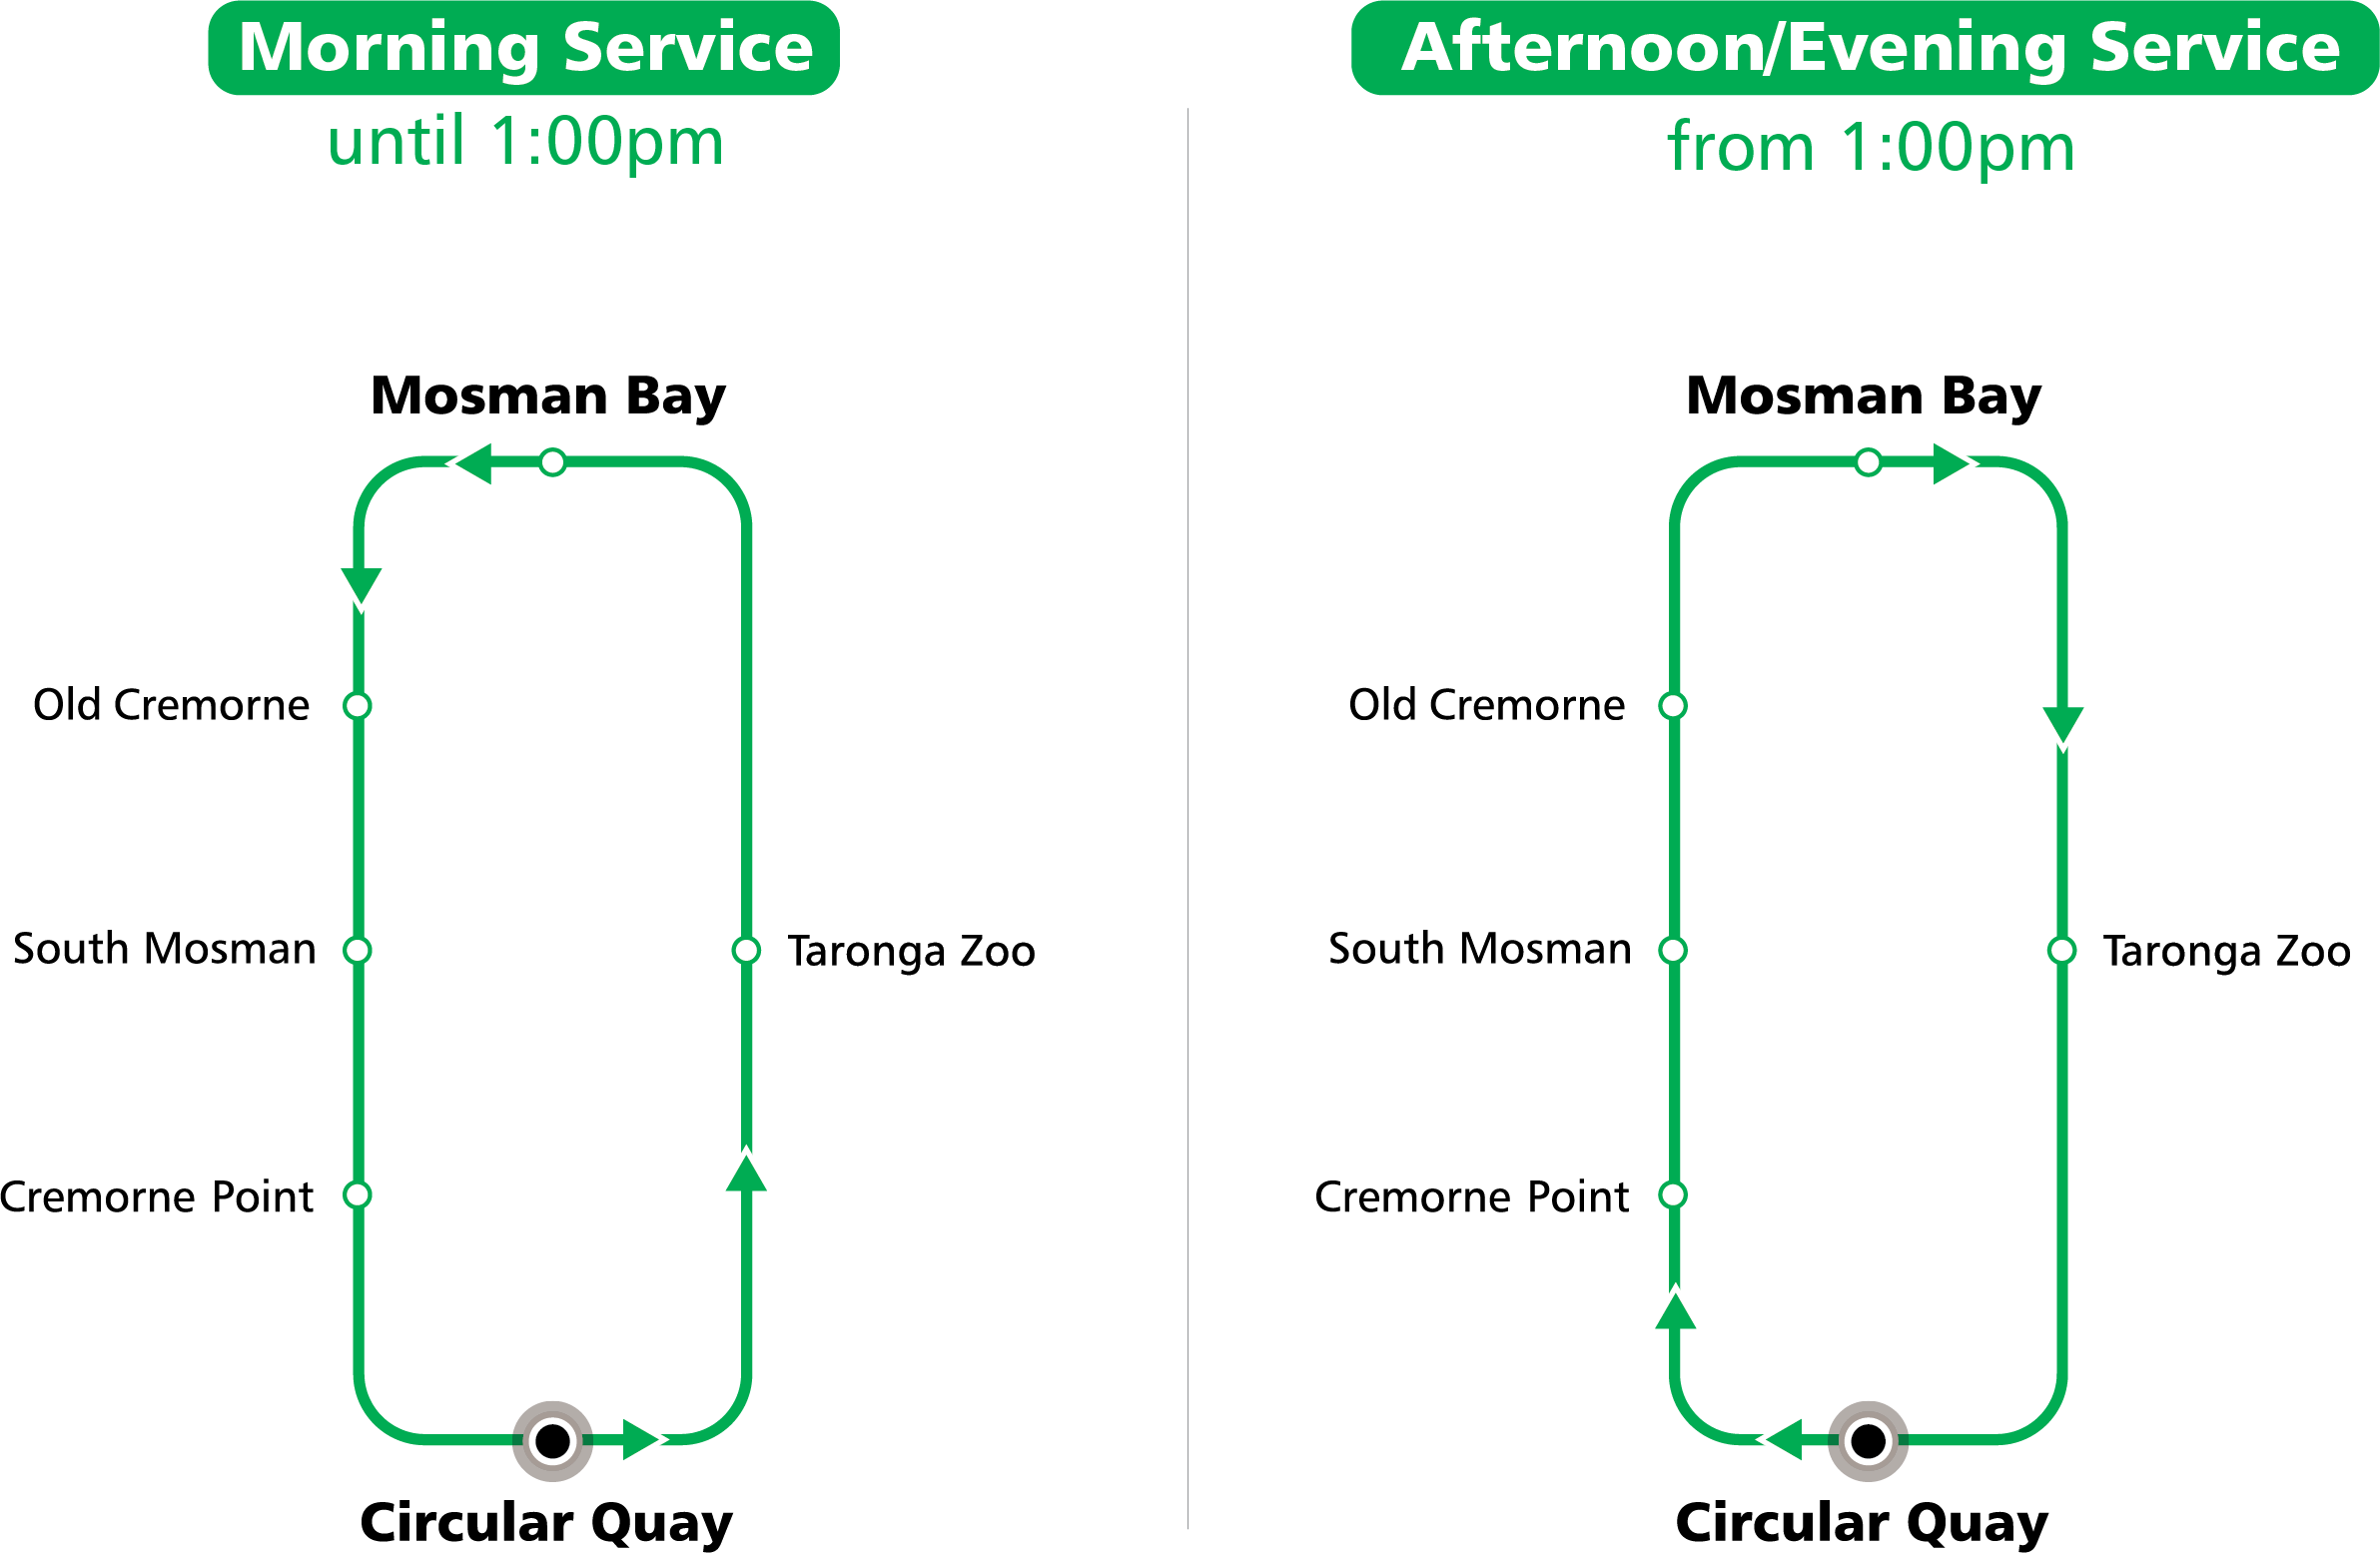 Future F6 Route loop service graphic